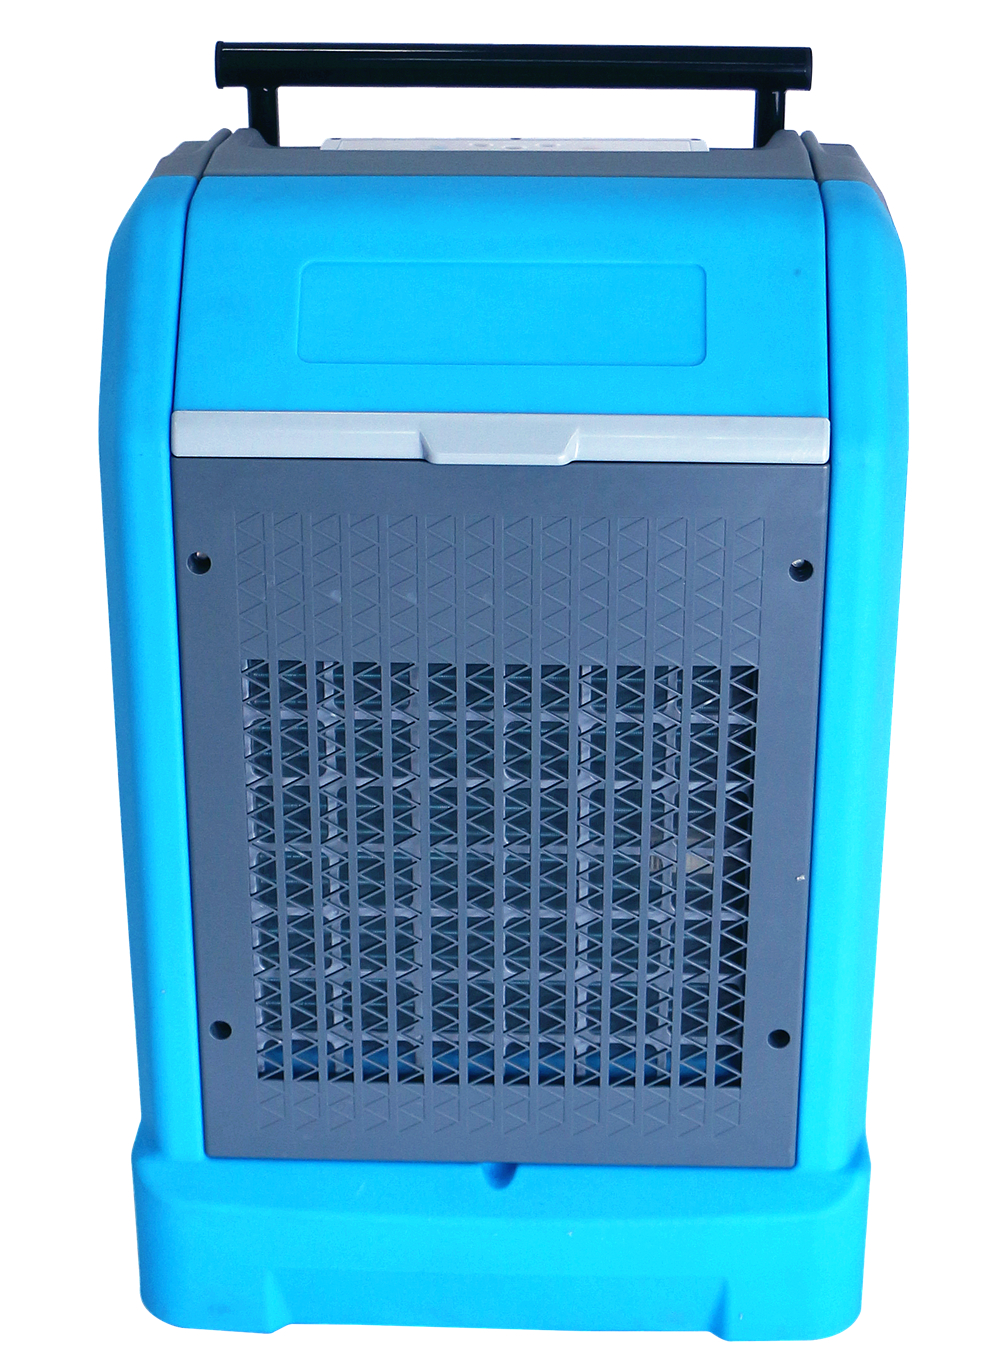 130 Pints New Design Industrial Dehumidifier For Water Damage Restoration and Building Reconstruction